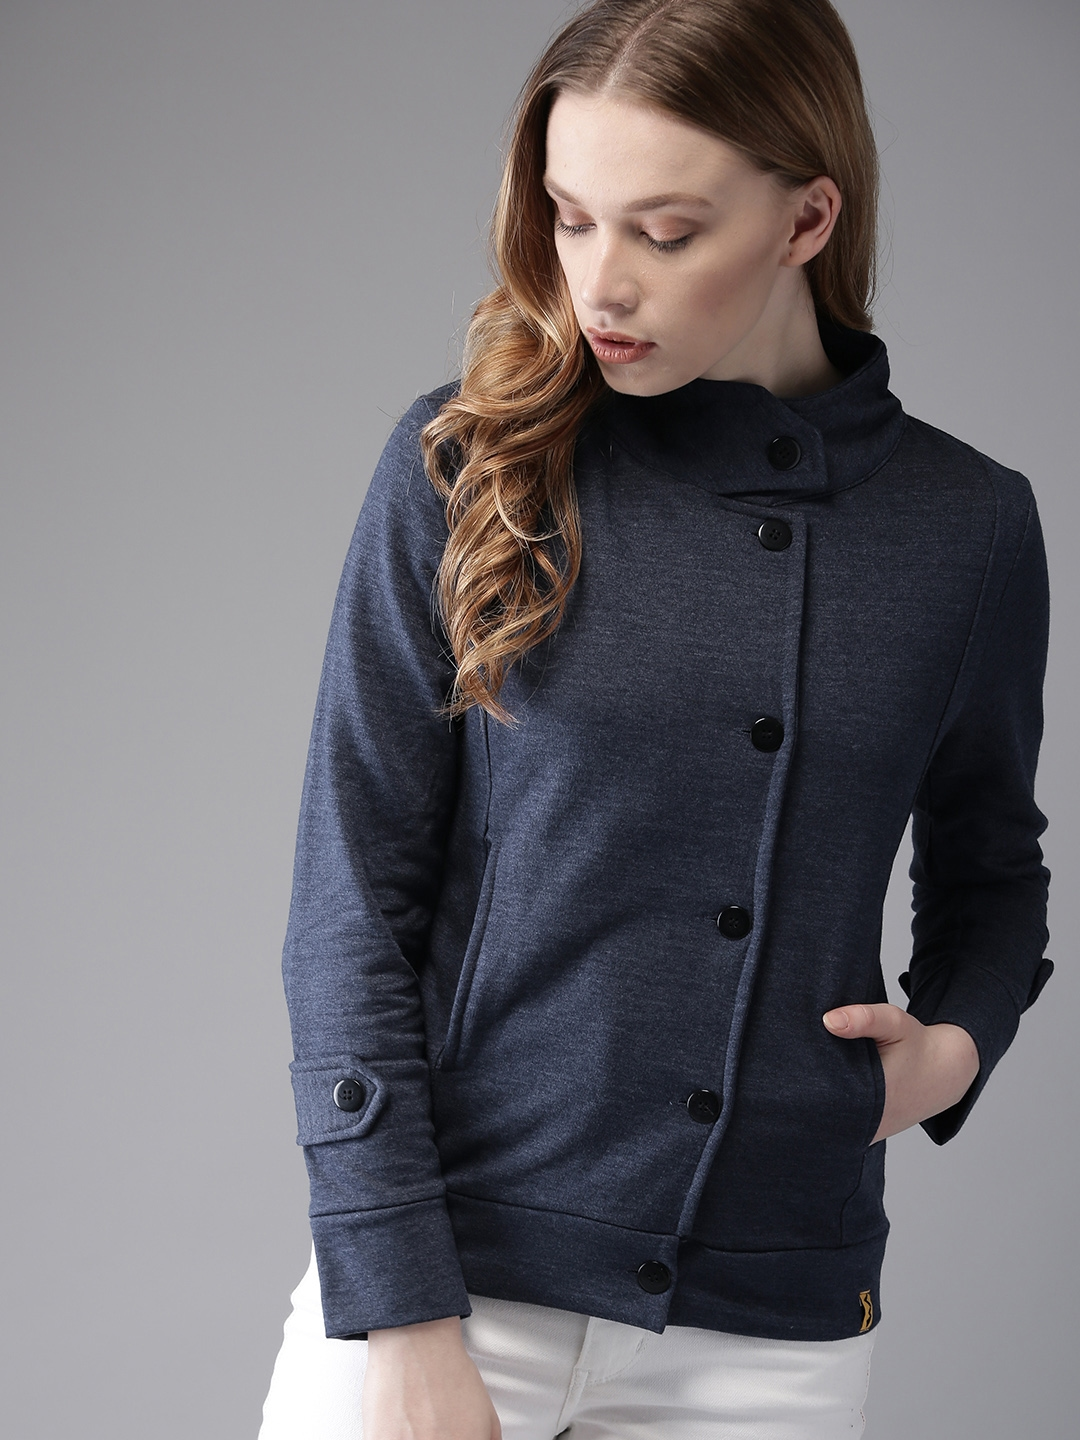 Campus Sutra Women Blue Solid Tailored Jacket